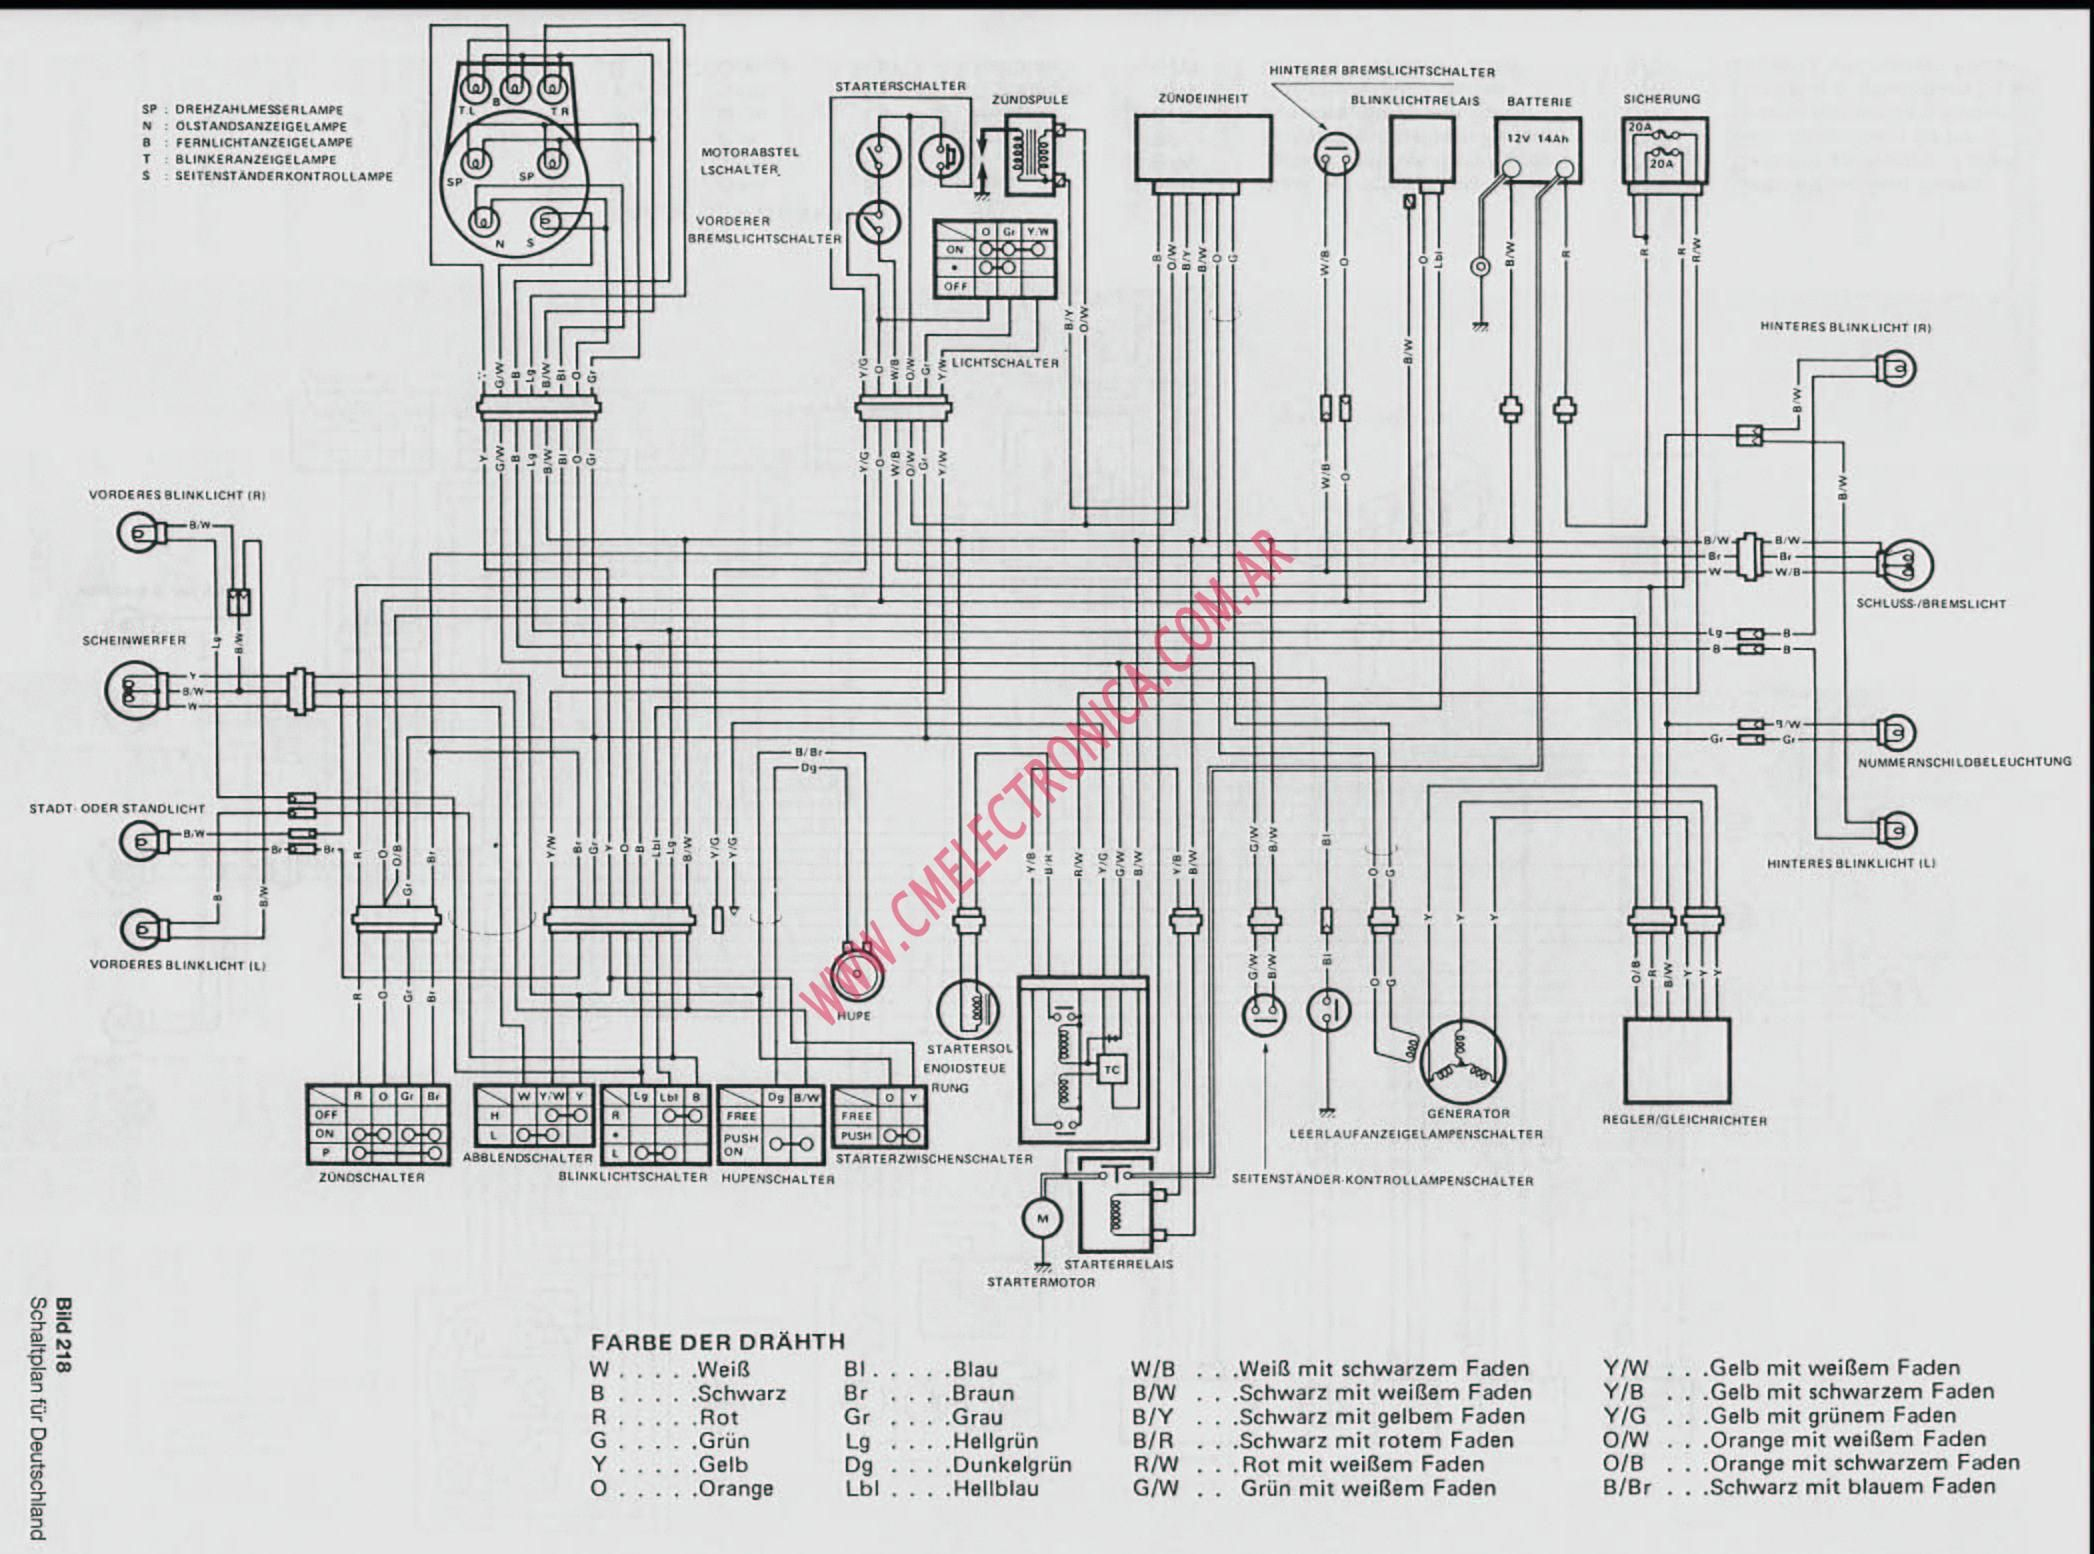 Best of Diagram Suzuki Vl1500 Wiring Diagram - Millions ... Best Wiring Diagram on smart car diagrams, hvac diagrams, switch diagrams, friendship bracelet diagrams, electronic circuit diagrams, honda motorcycle repair diagrams, electrical diagrams, engine diagrams, internet of things diagrams, sincgars radio configurations diagrams, transformer diagrams, troubleshooting diagrams, battery diagrams, series and parallel circuits diagrams, led circuit diagrams, lighting diagrams, gmc fuse box diagrams, pinout diagrams, motor diagrams,